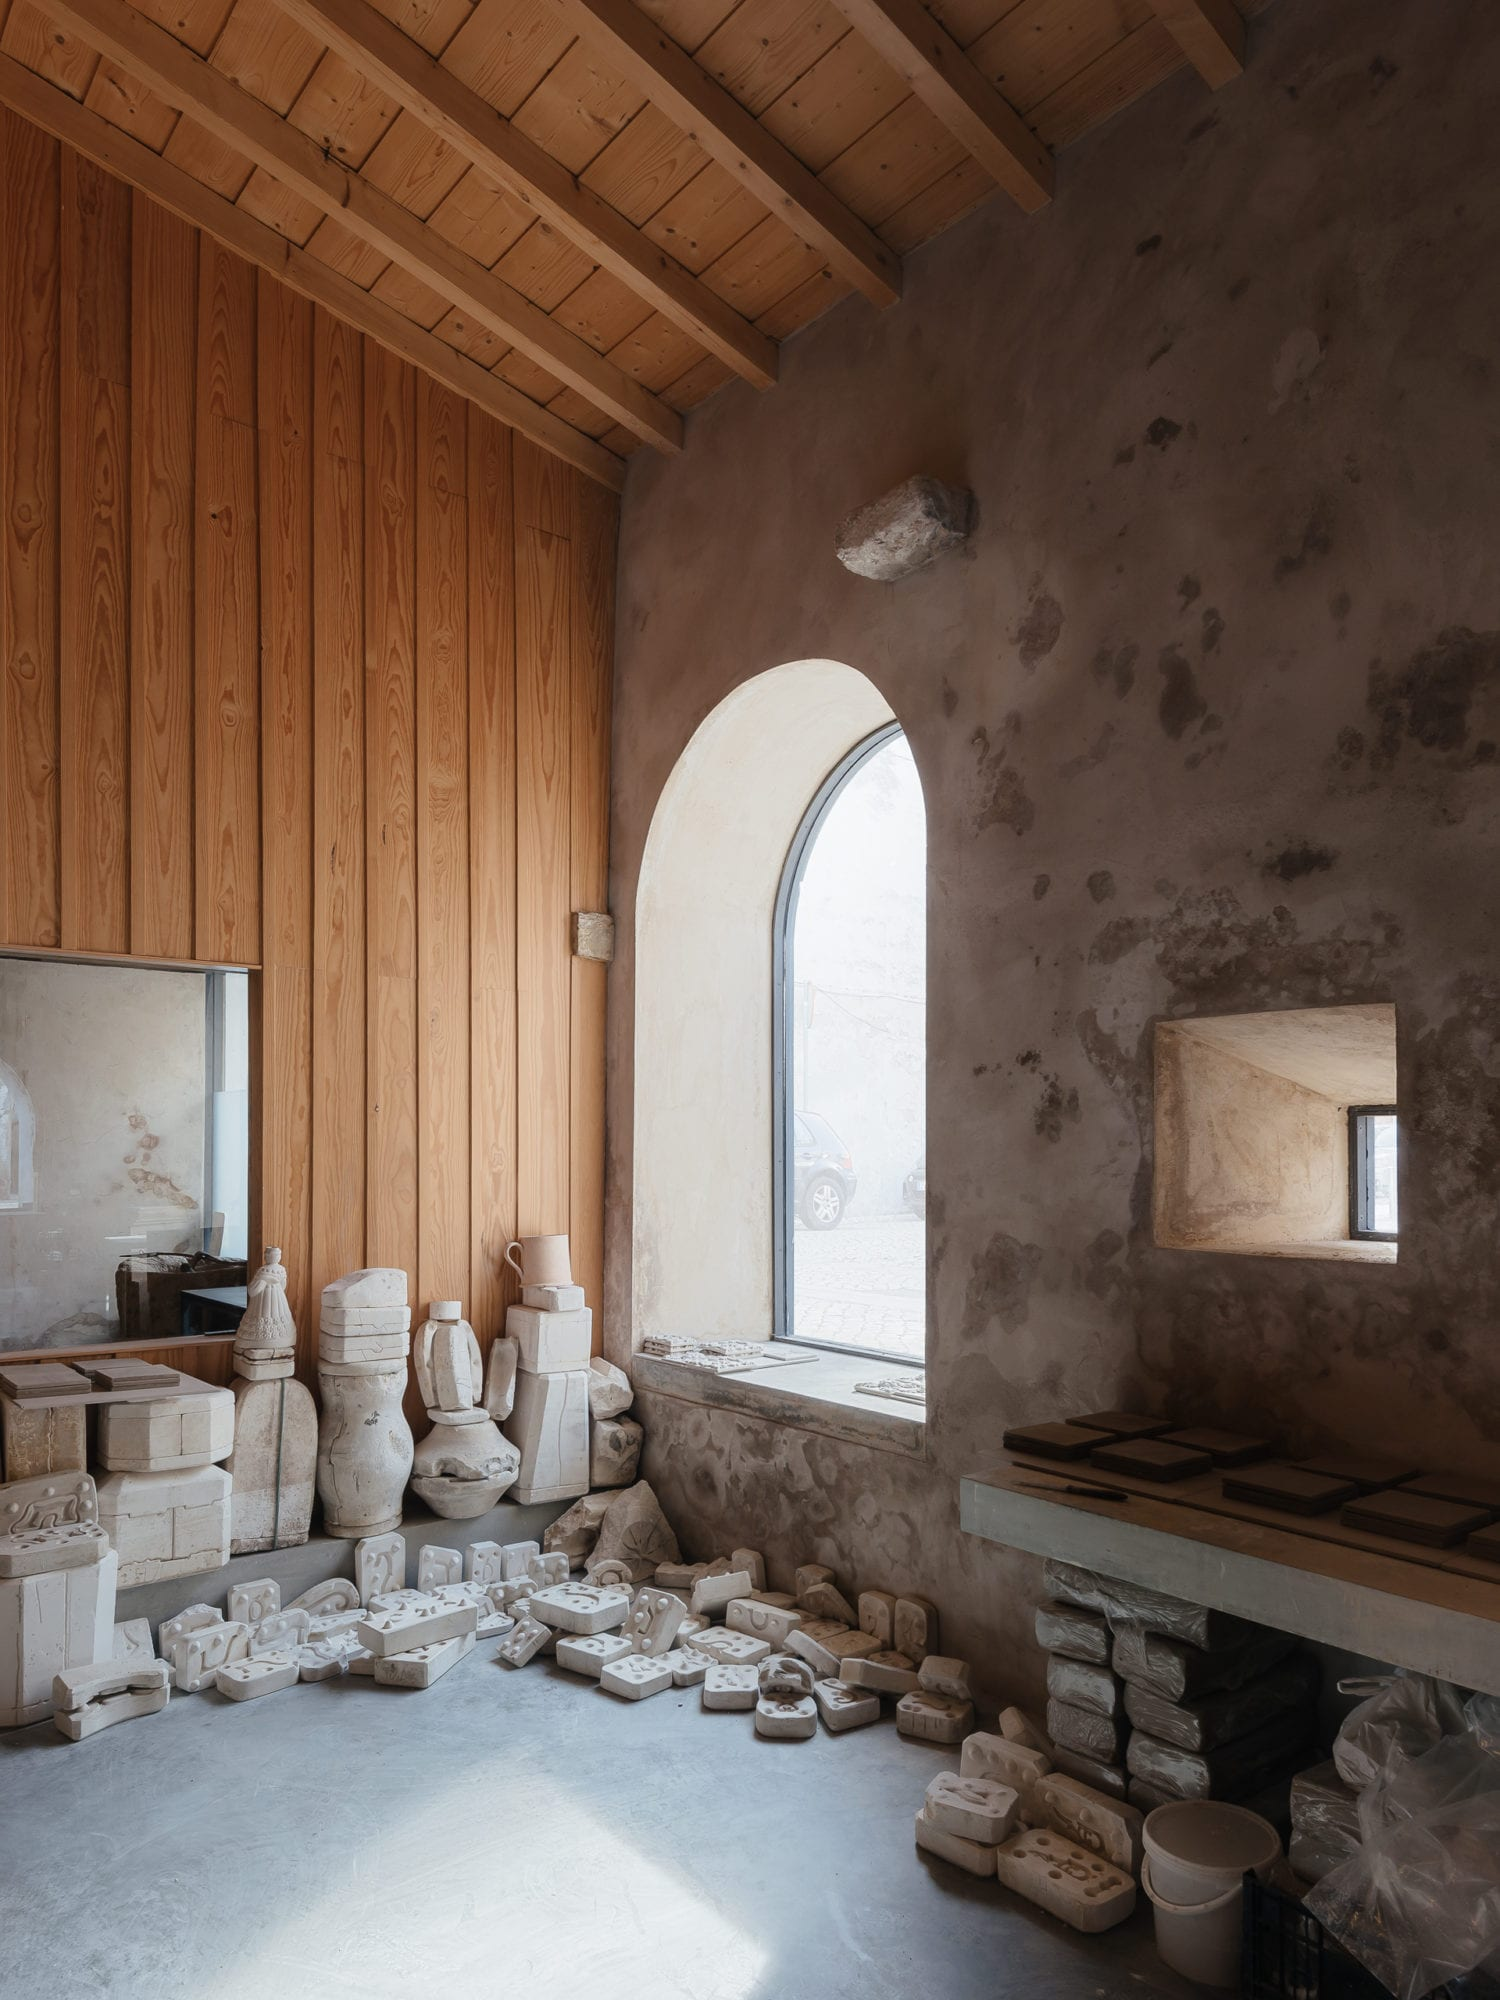 Luisa Bebiano And Atelier Do Corvo Renovation Old Ceramic Society Of Coimbra 18th Century Building Yellowtrace 08